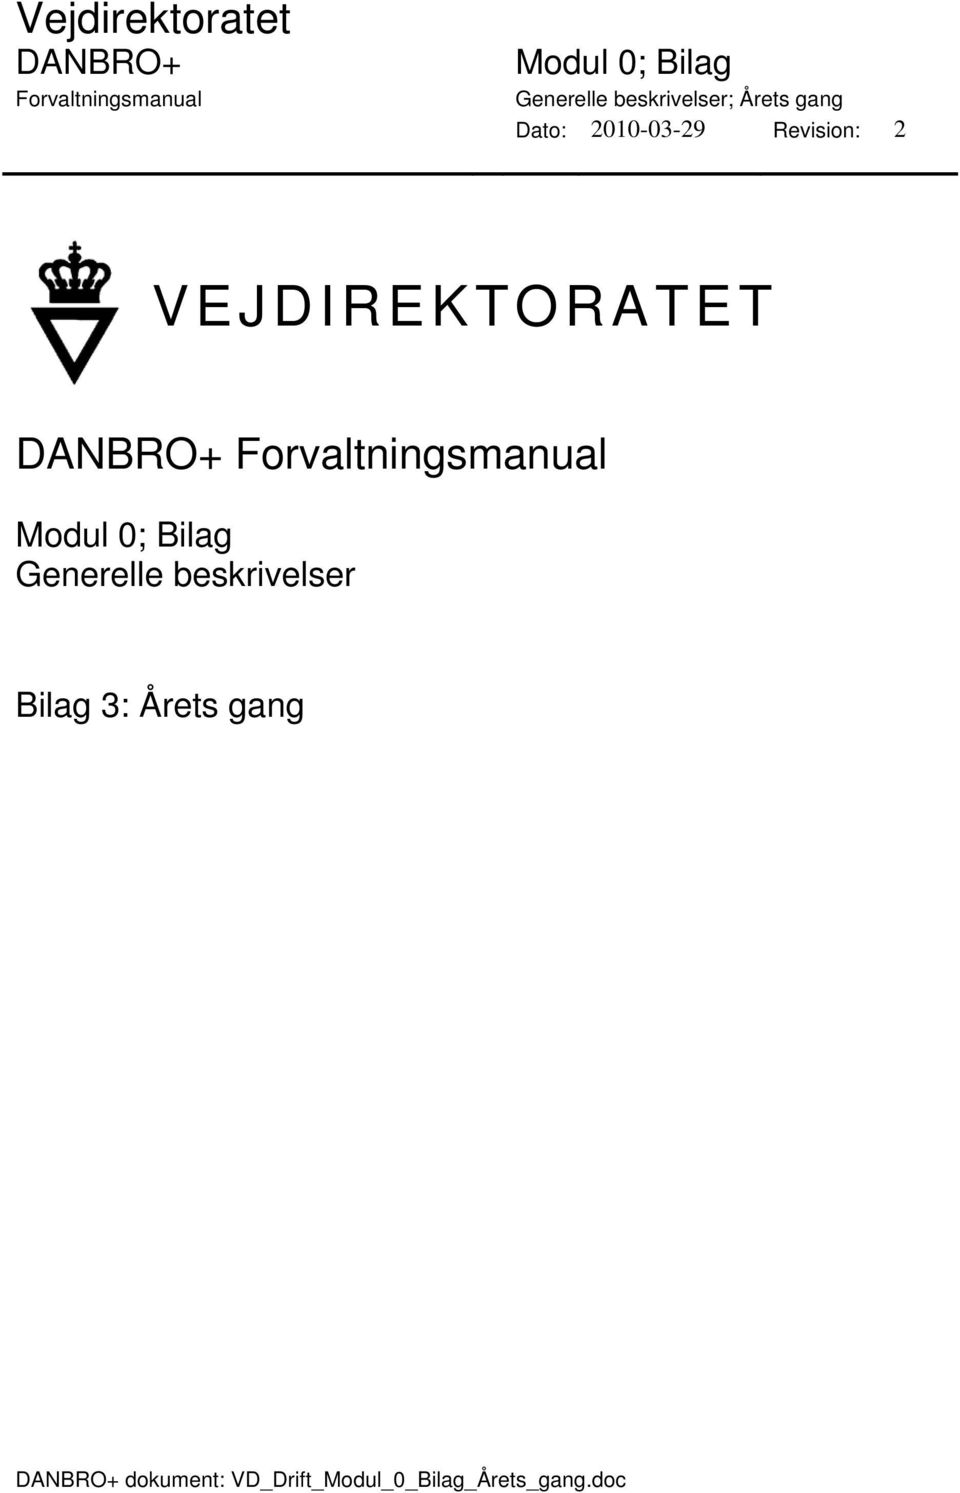 Årets gang dokument: